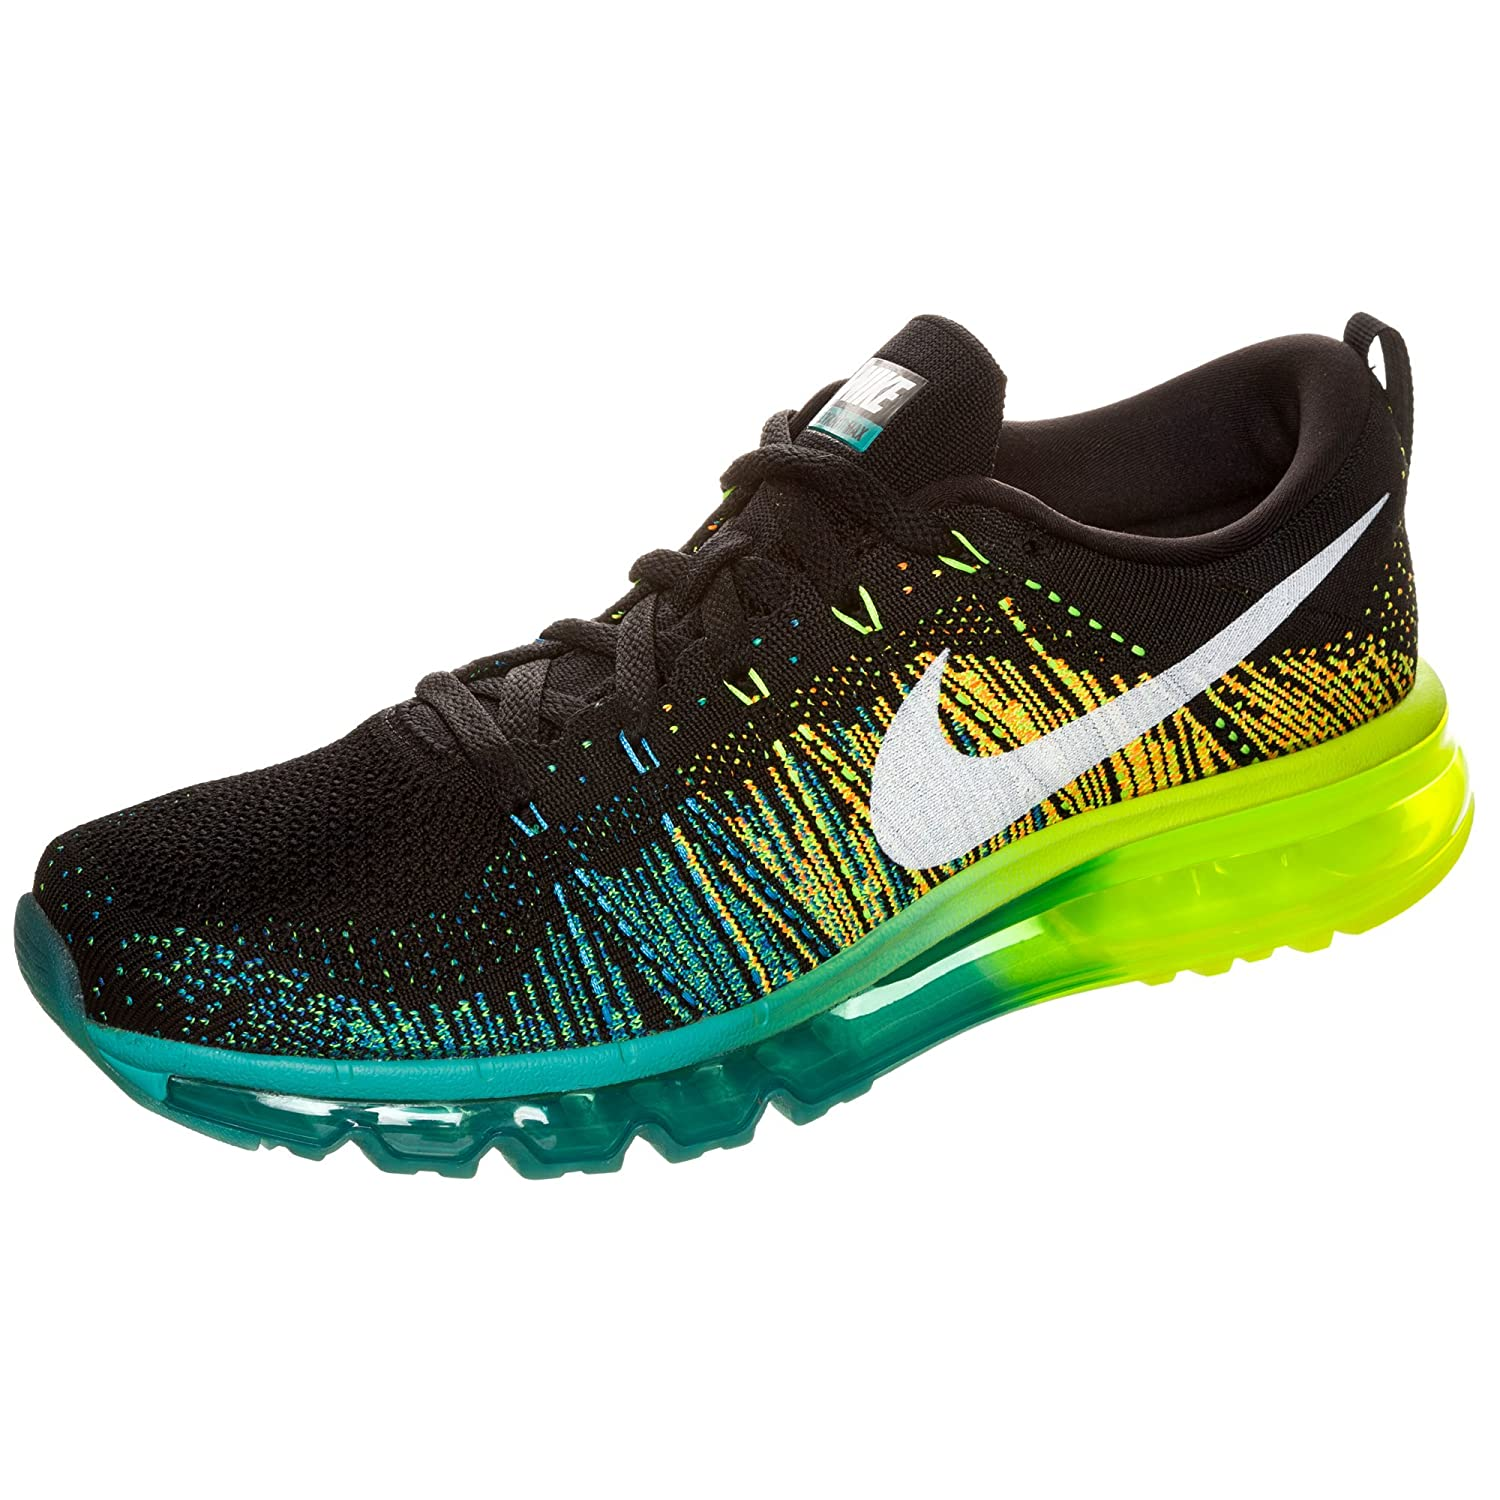 Men's Nike Flyknit Air Max BlackTurbo Green Volt Running Shoes 620469 001 For Sale